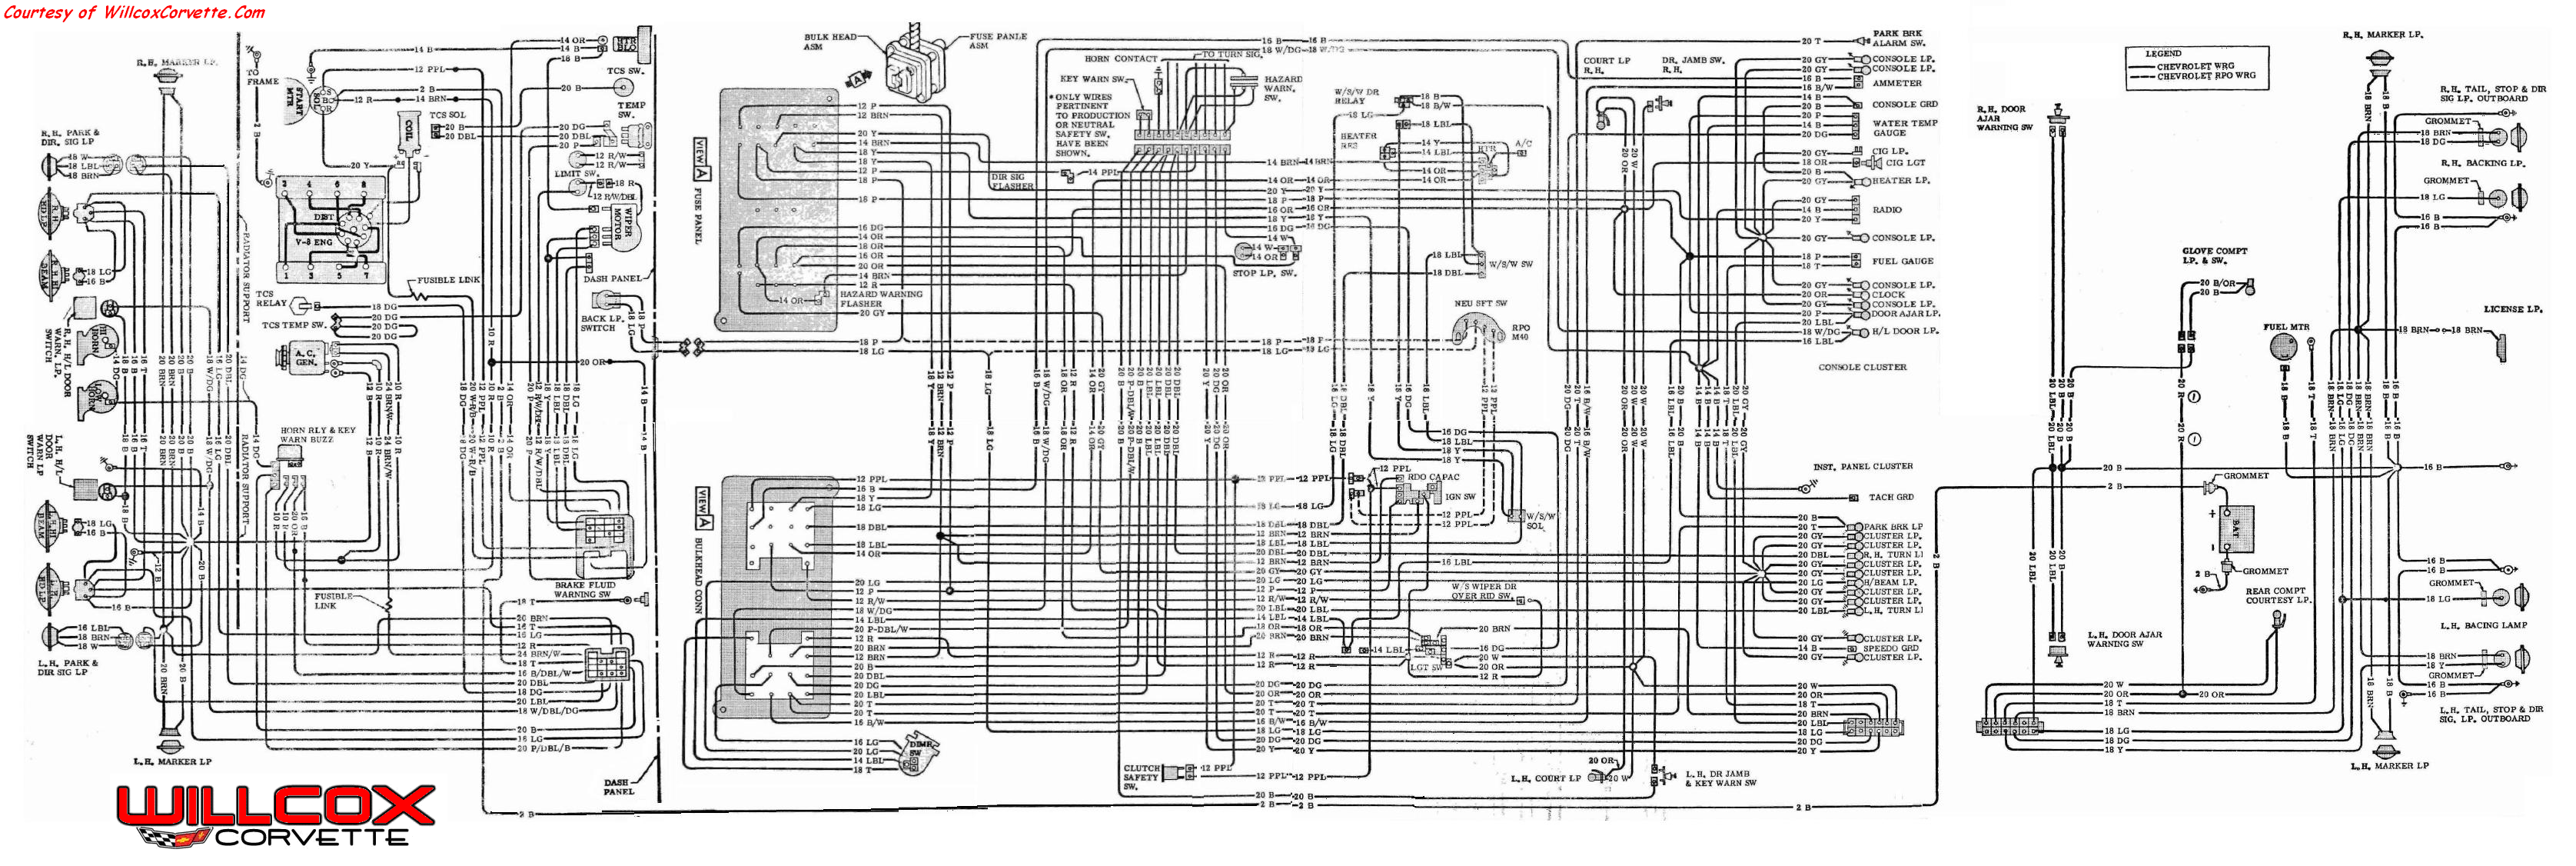 1970 corvette wire schematic tracer 1970 backup light switch and ac connections? corvetteforum 1970 corvette wiring diagram at mifinder.co